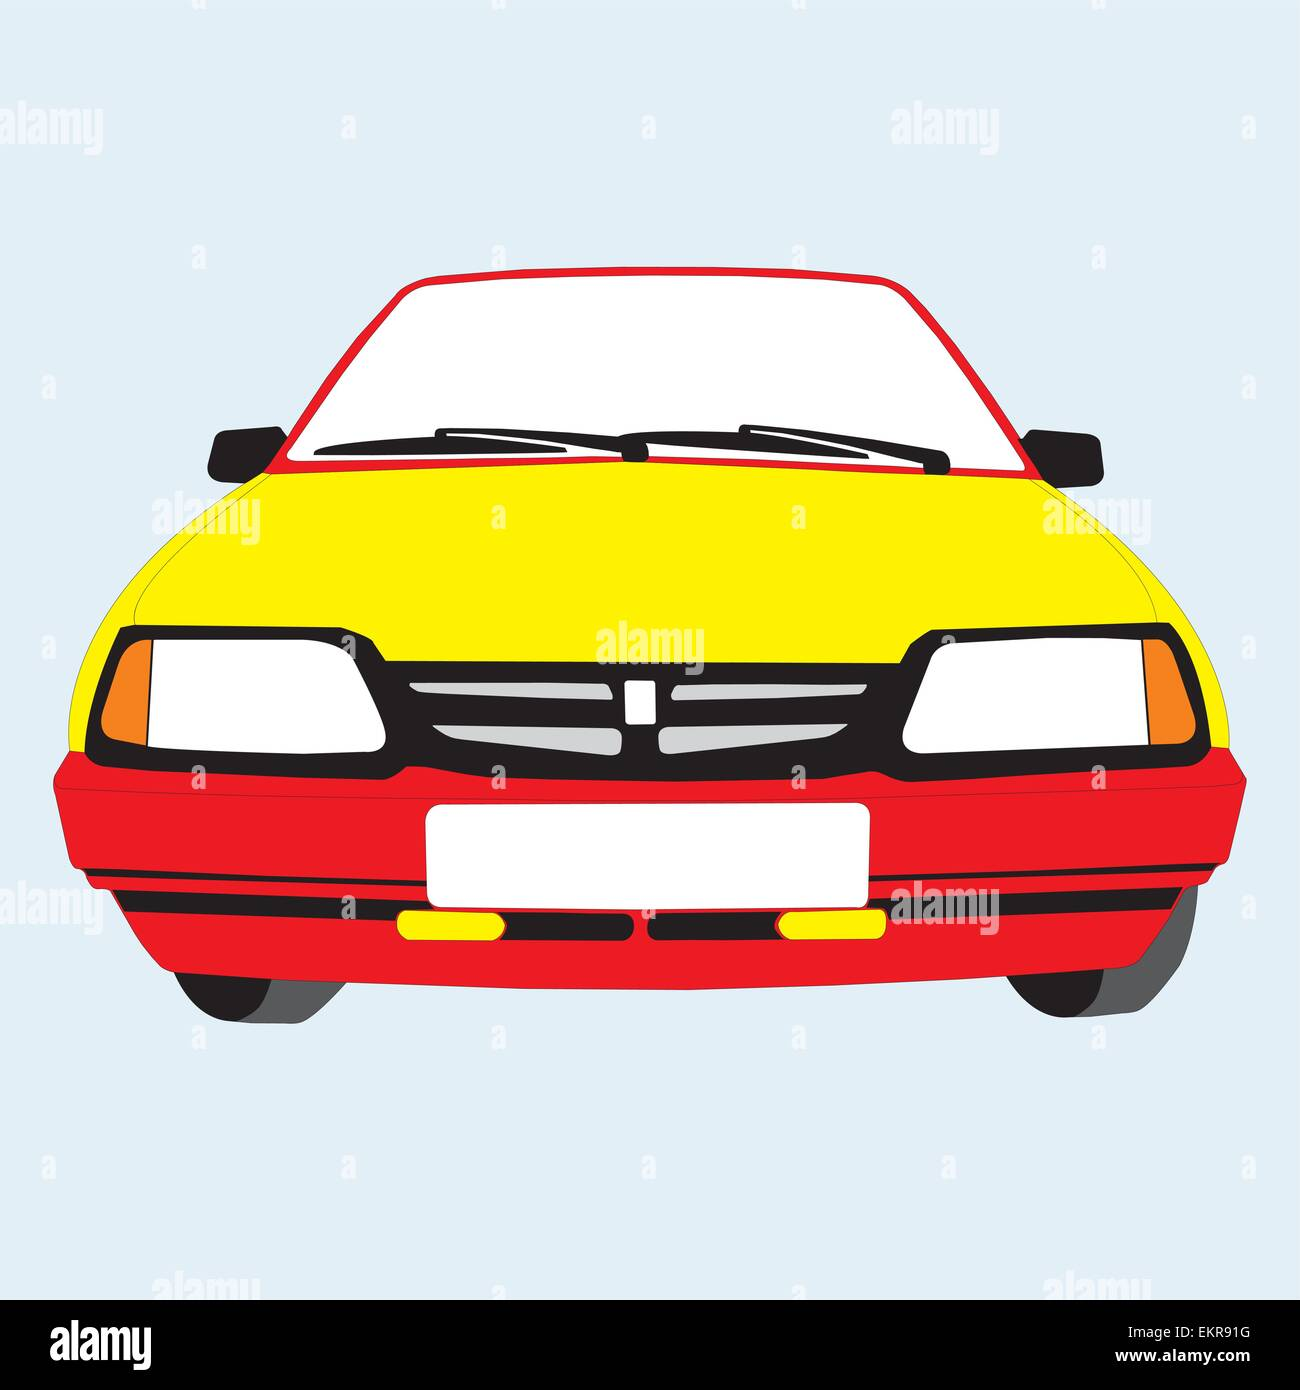 Colour Drawing The Representing Car Standing Stock Vector Art